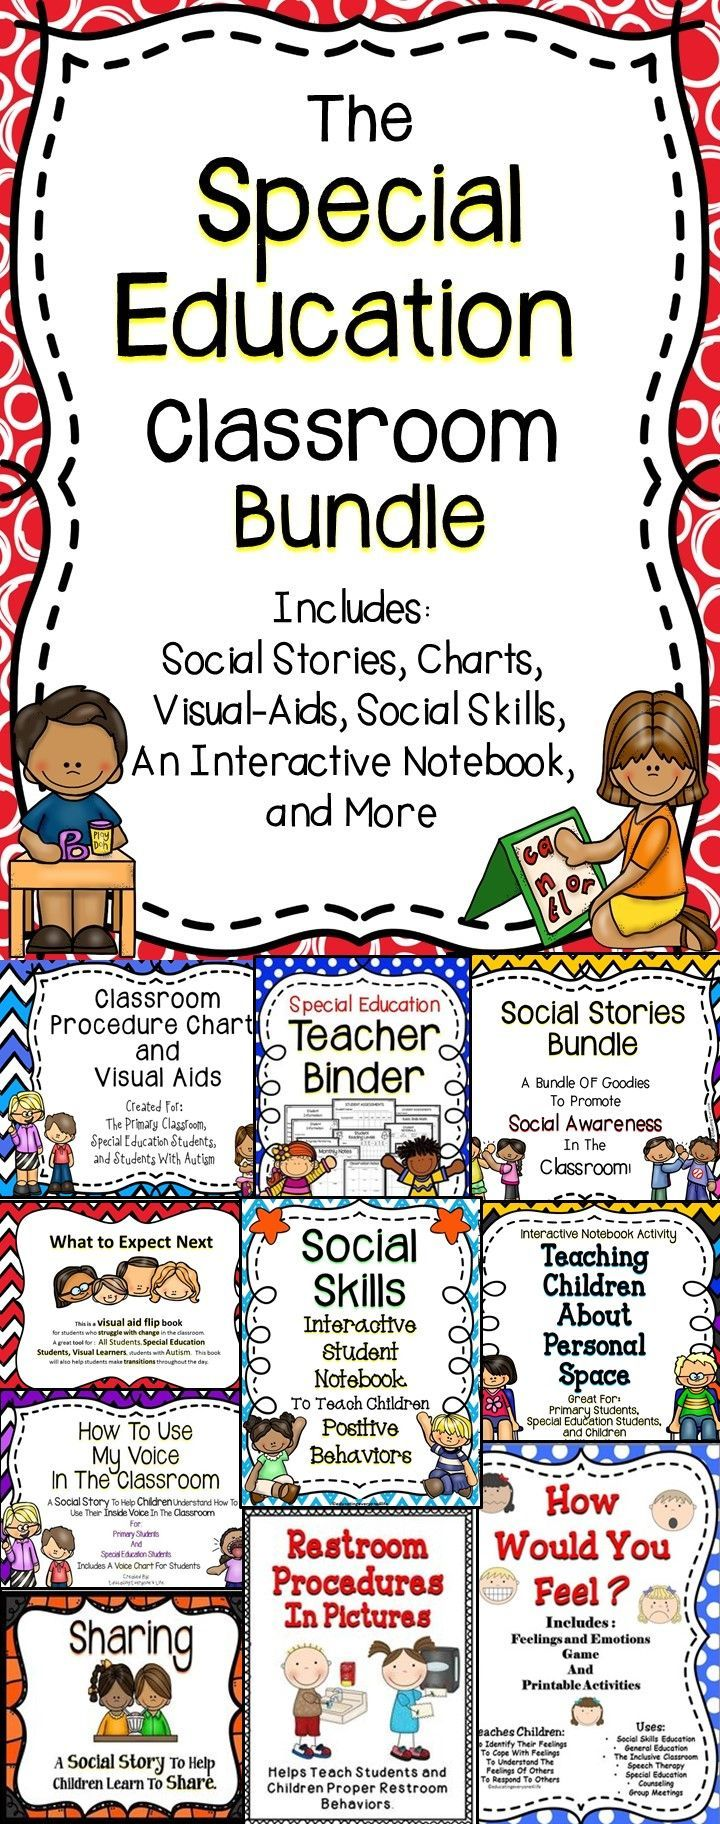 Special Education Bundle - A huge collections of activities and teacher tools for the classroom.